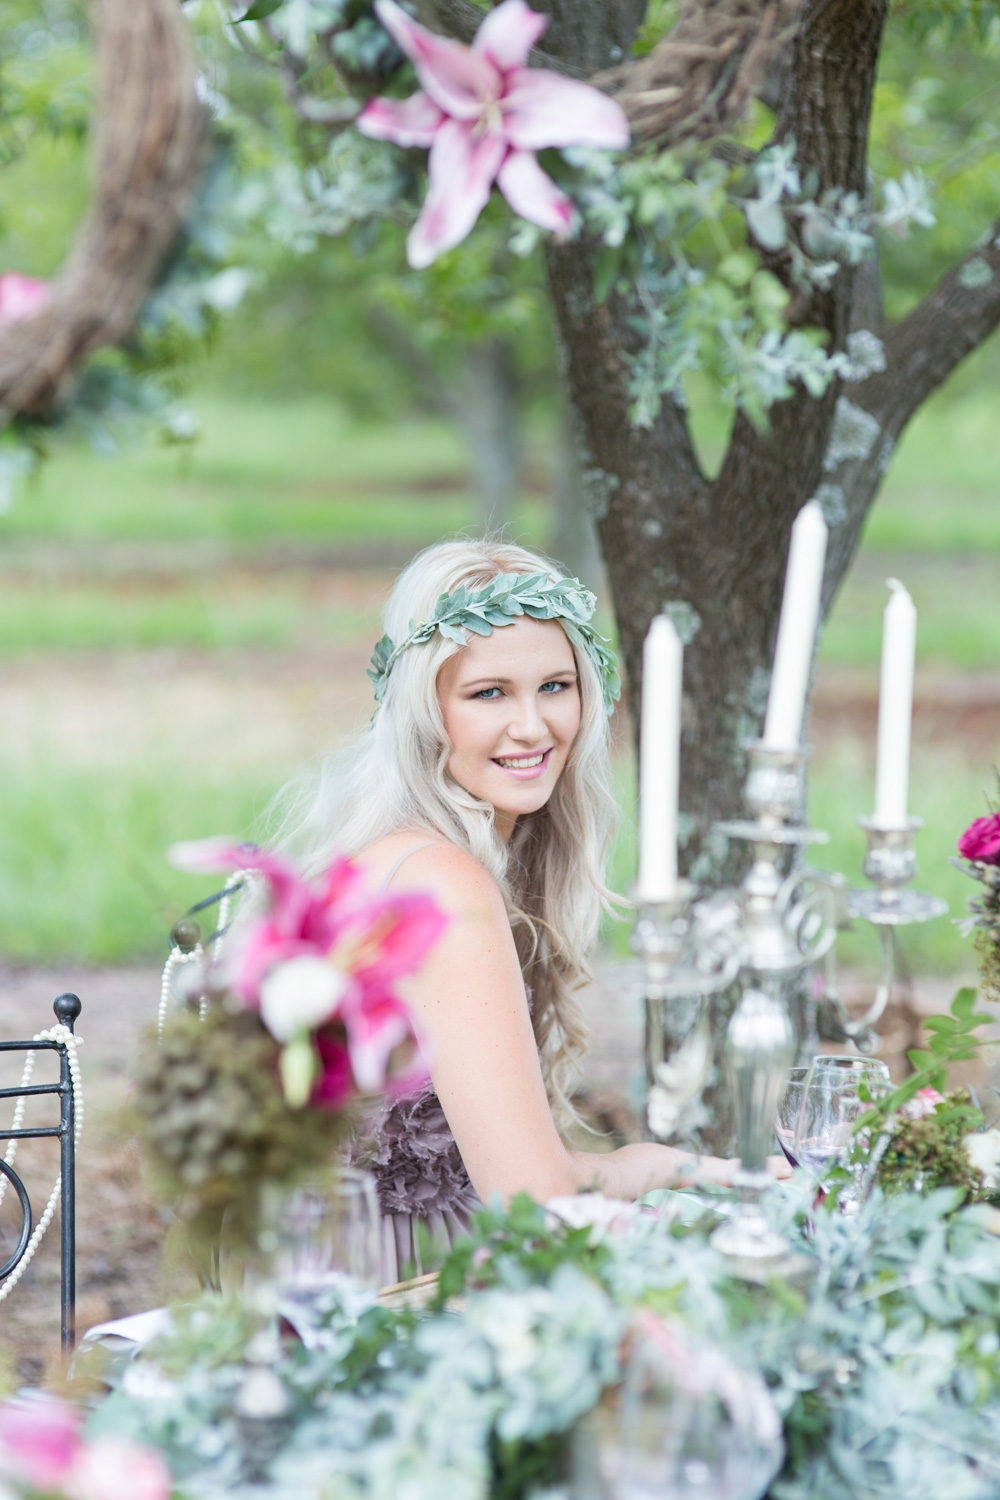 Shokran pretoria wedding venue shoot060.jpg